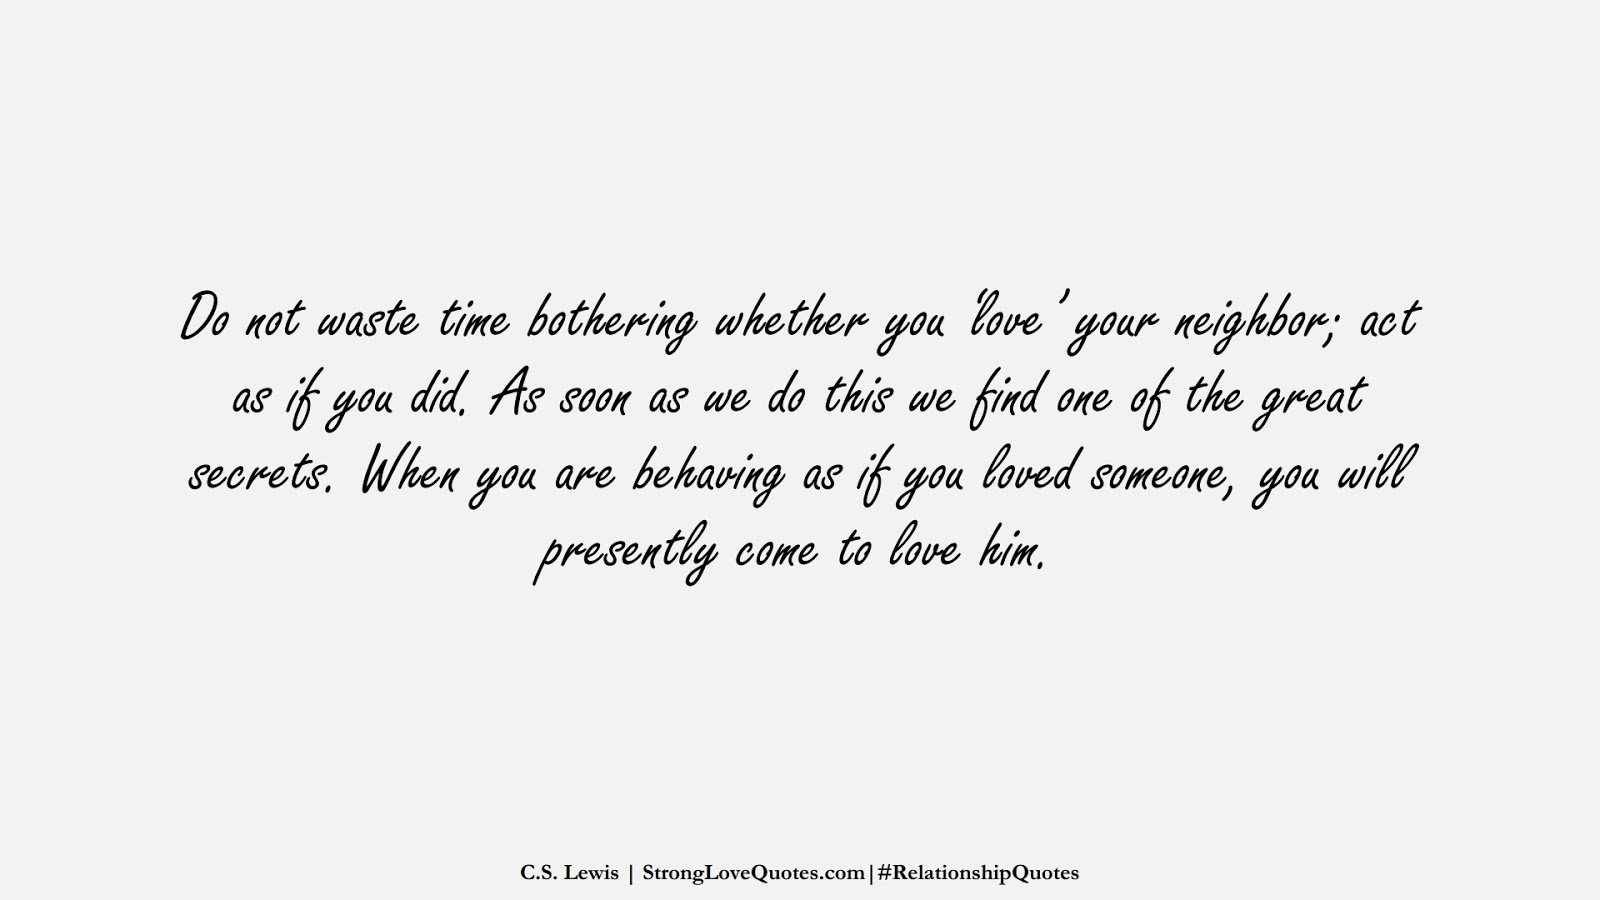 Do not waste time bothering whether you 'love' your neighbor; act as if you did. As soon as we do this we find one of the great secrets. When you are behaving as if you loved someone, you will presently come to love him. (C.S. Lewis);  #RelationshipQuotes